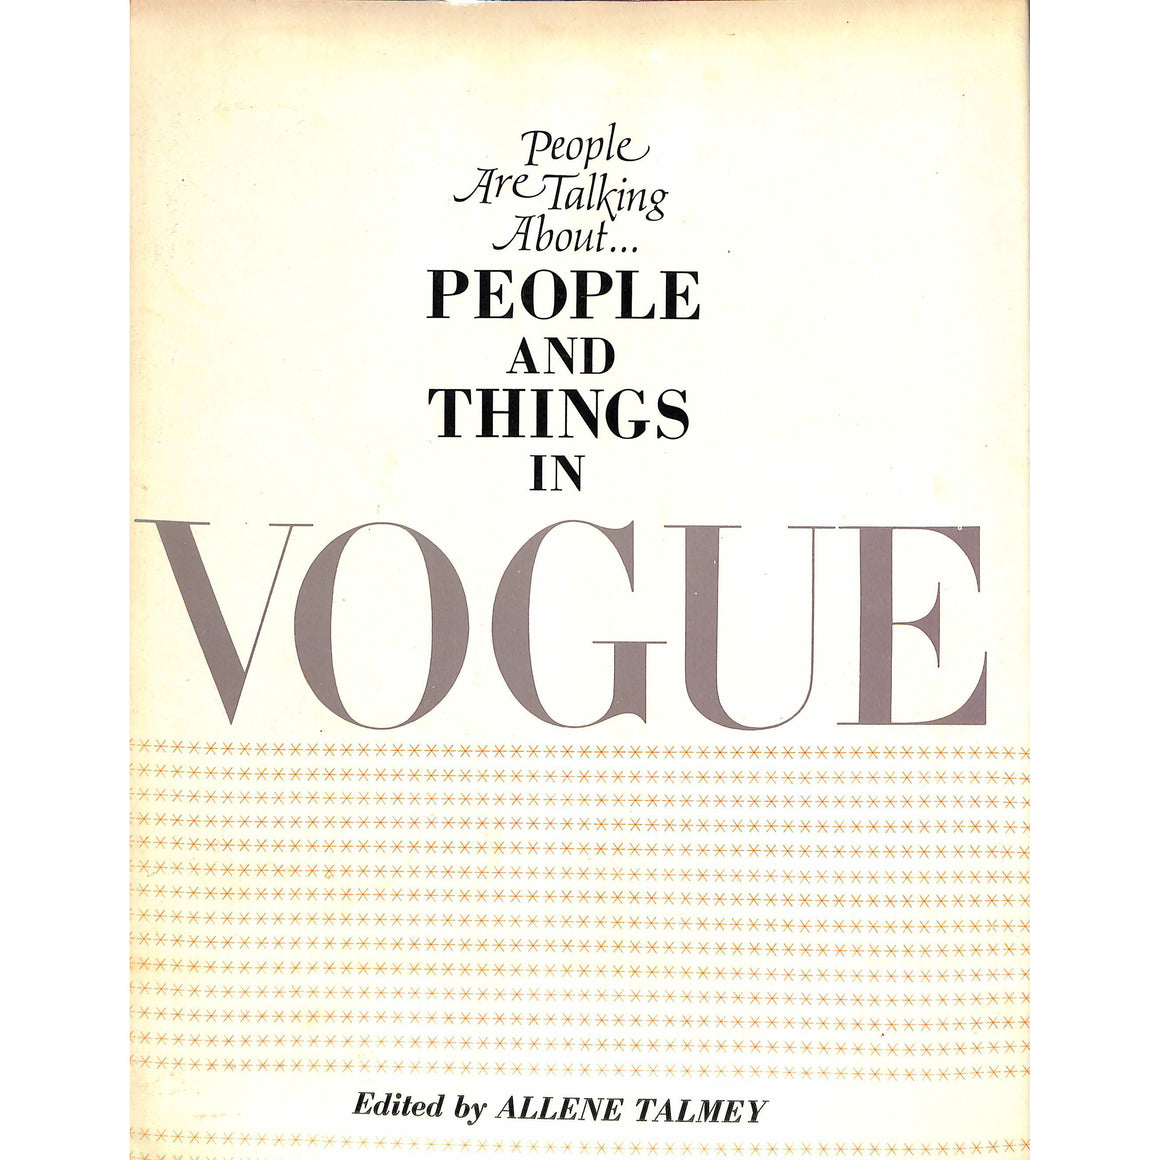 People And Things In Vogue